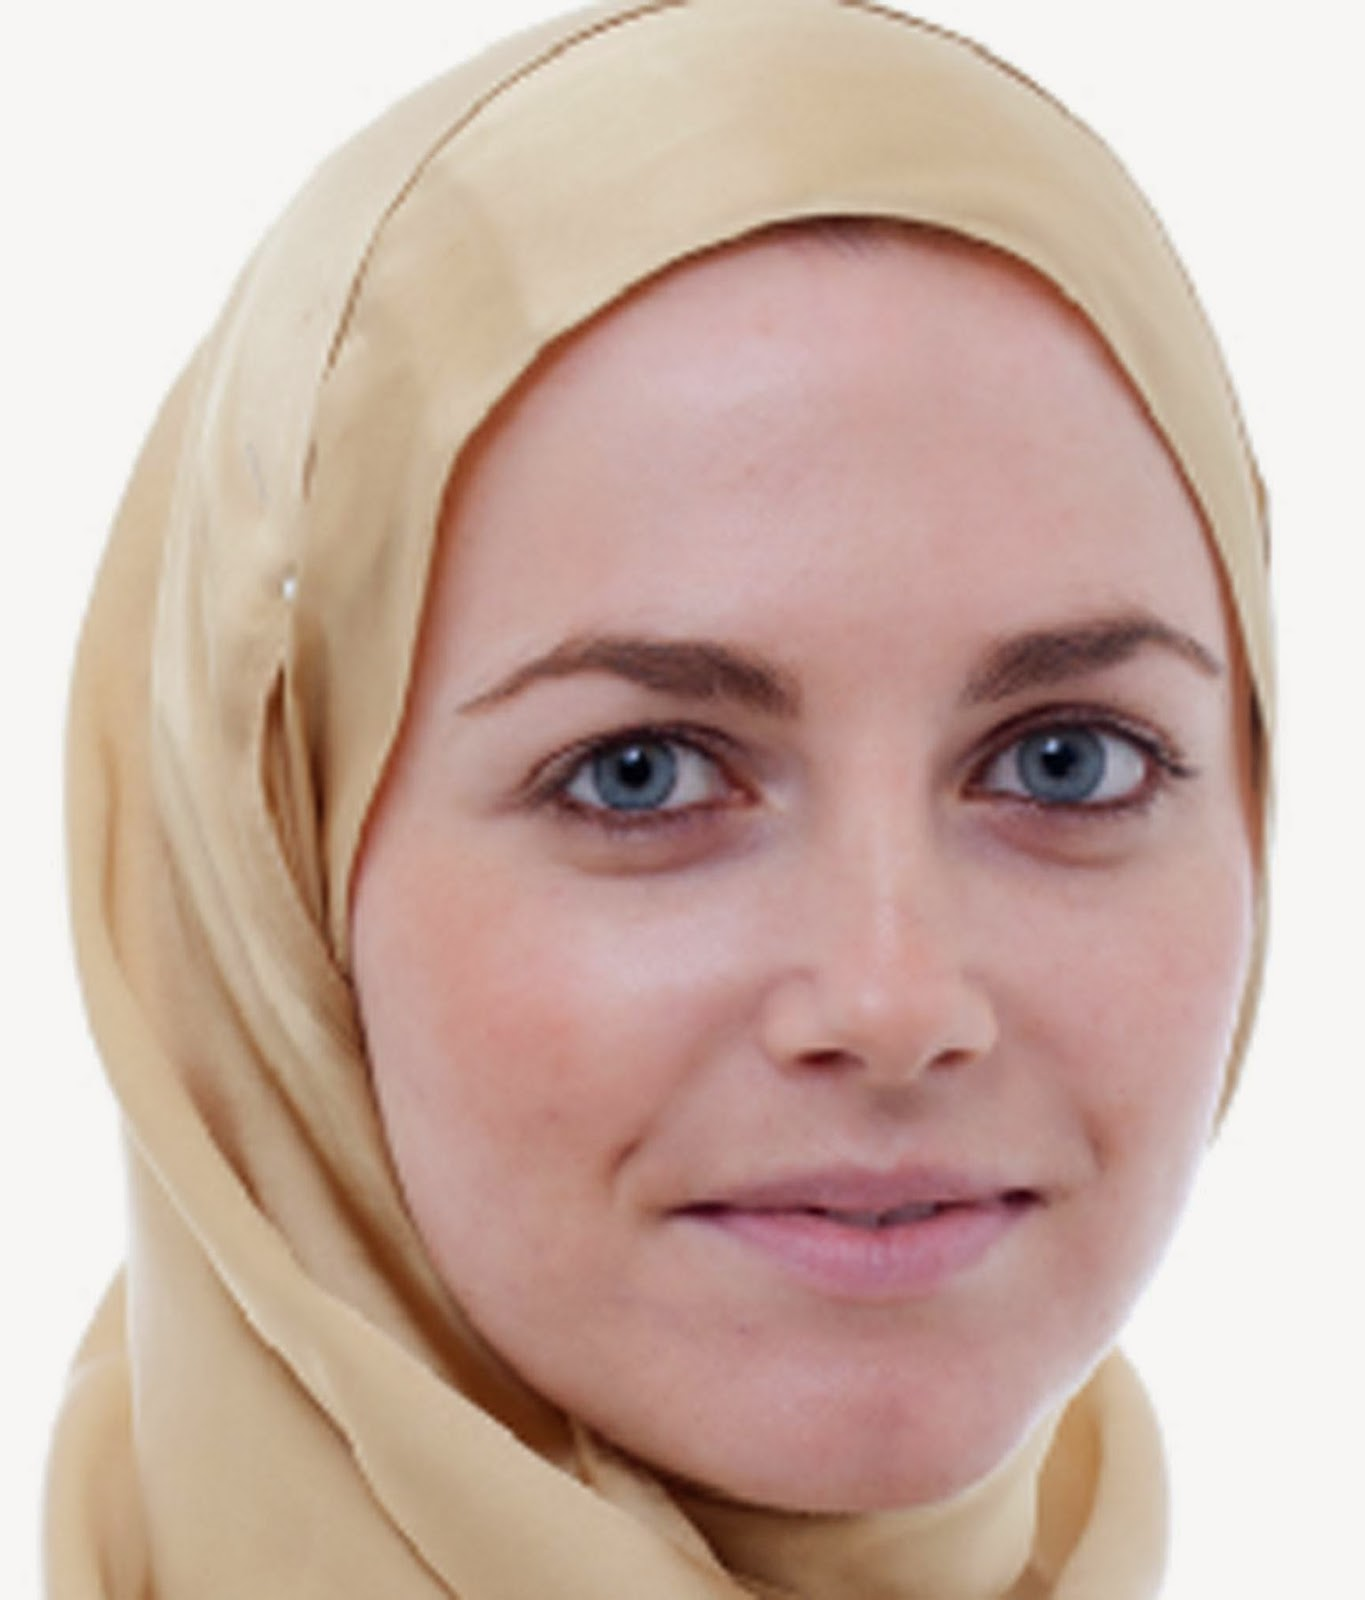 houlton muslim single women Single muslim woman - if you are looking for a soul mate from the same location, then our site is perfect for you, because you can look up for profiles by your city.